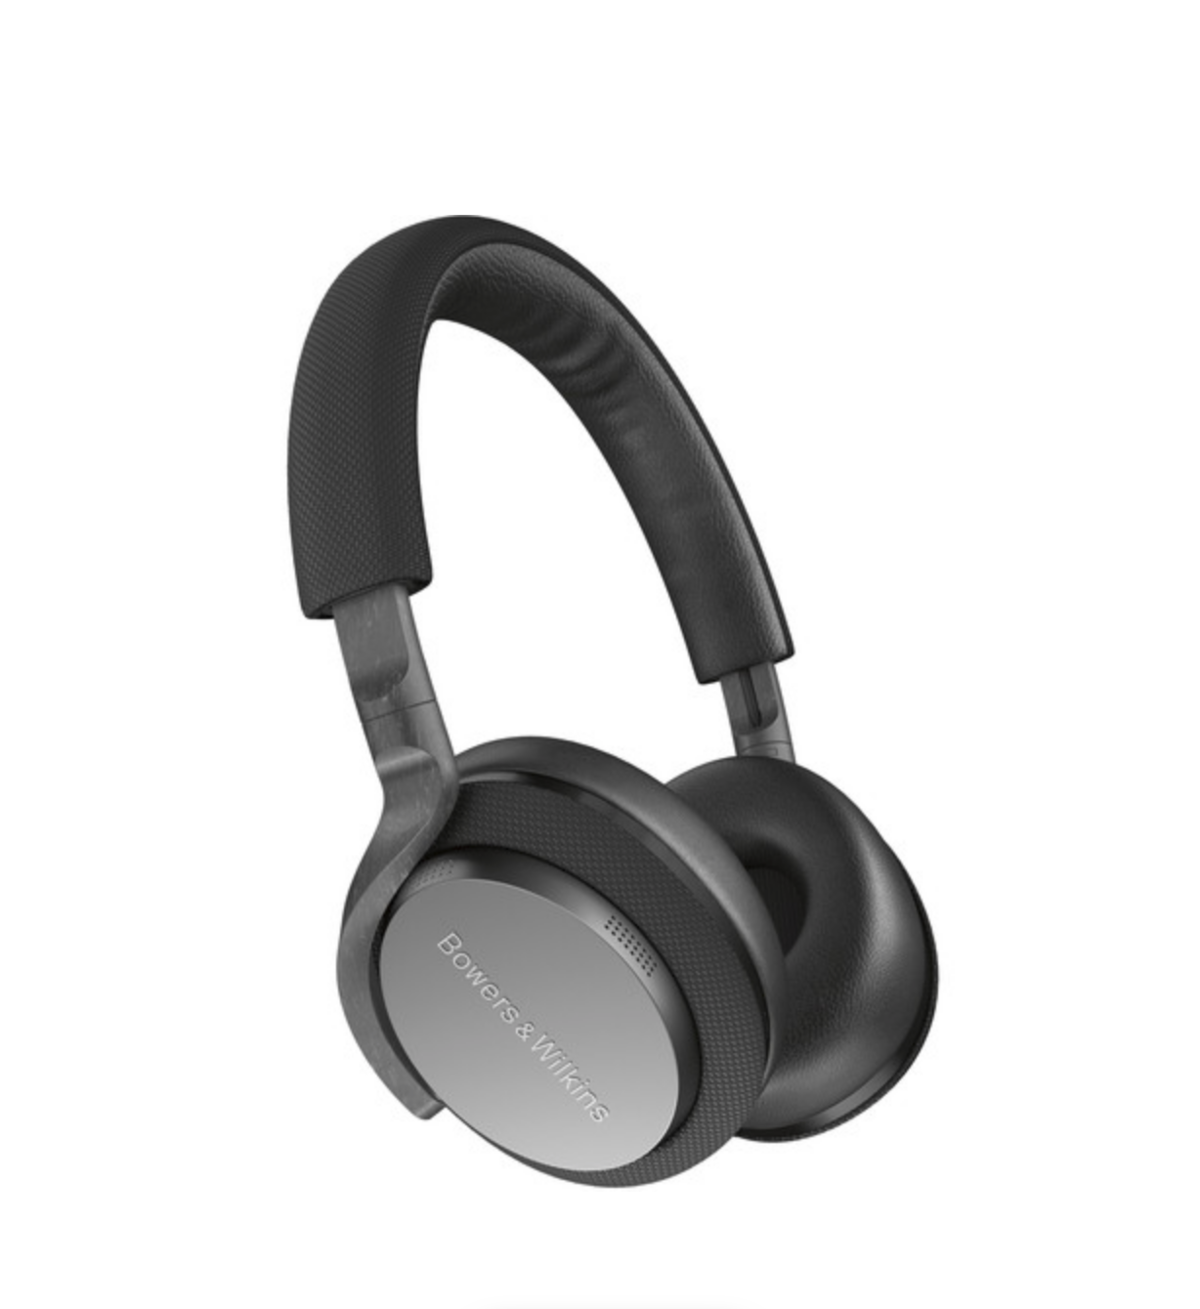 Bowers & Wilkins Px5 Wireless On-ear Cancelamento Ruído